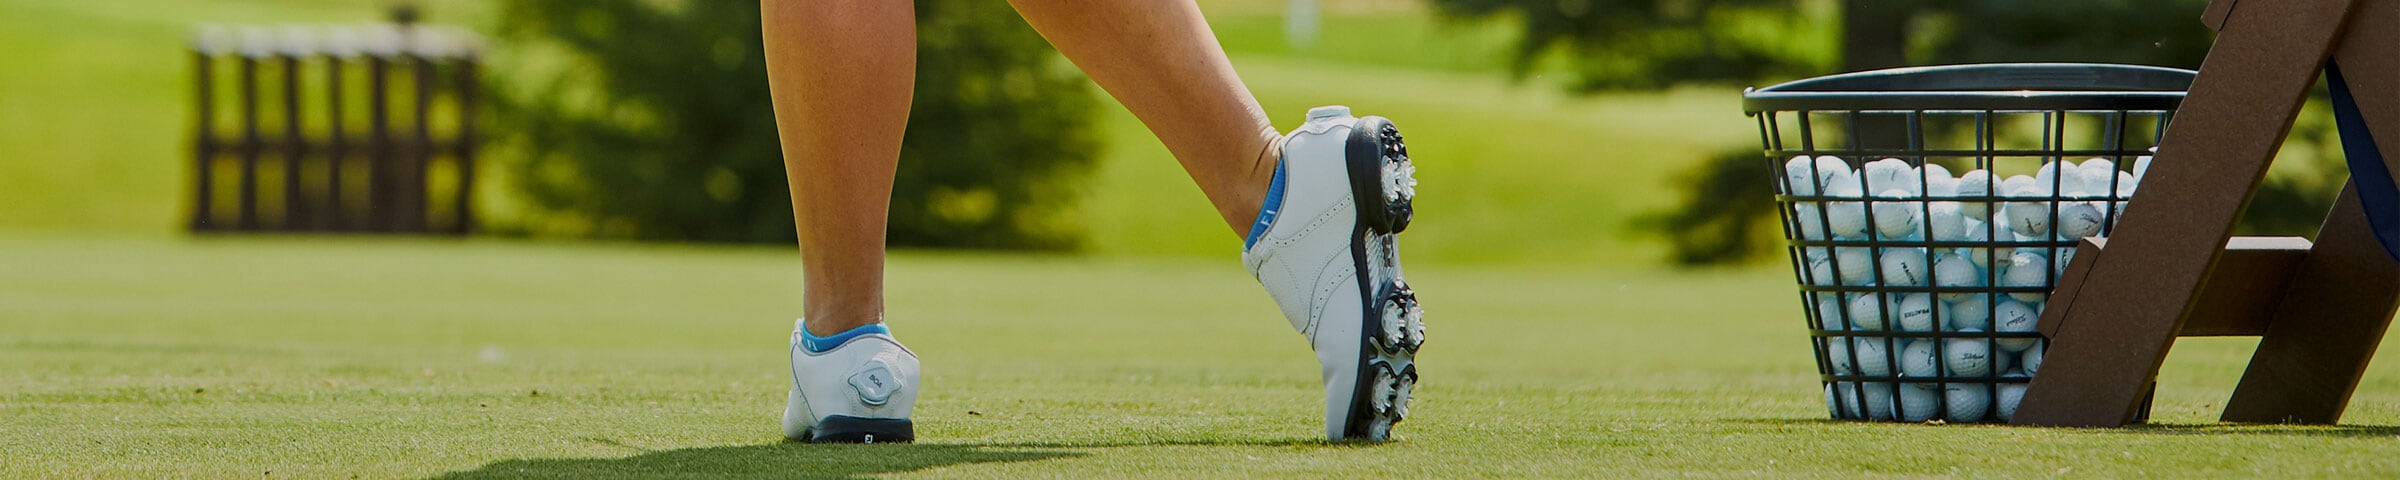 FootJoy Womens Spiked Golf Shoes